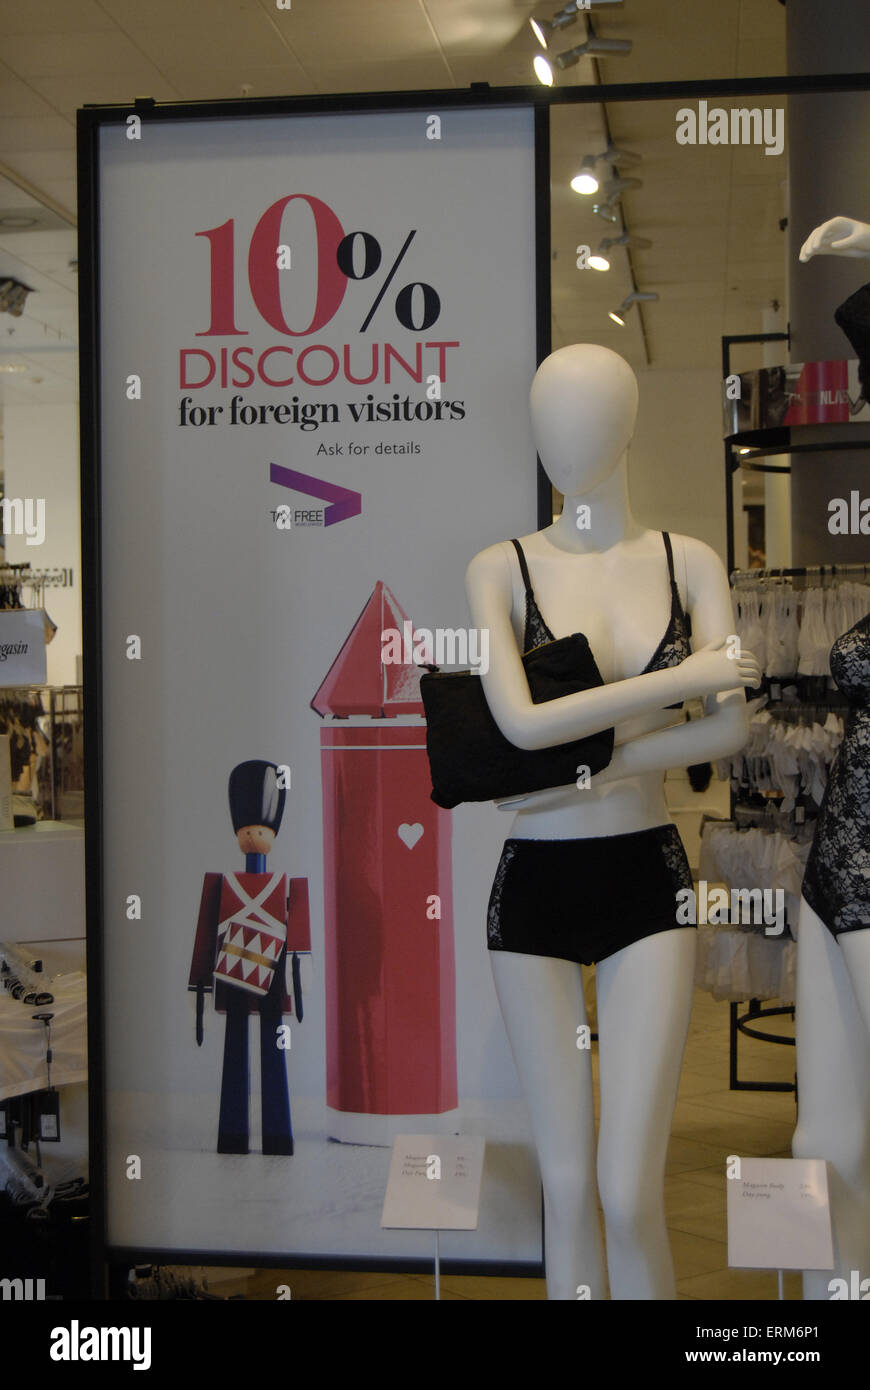 COPENAHGEN /DENAMRK 04 June  2015_  Magasin du nord apartment store offers 10% discount to foreign visitors     - Stock Image